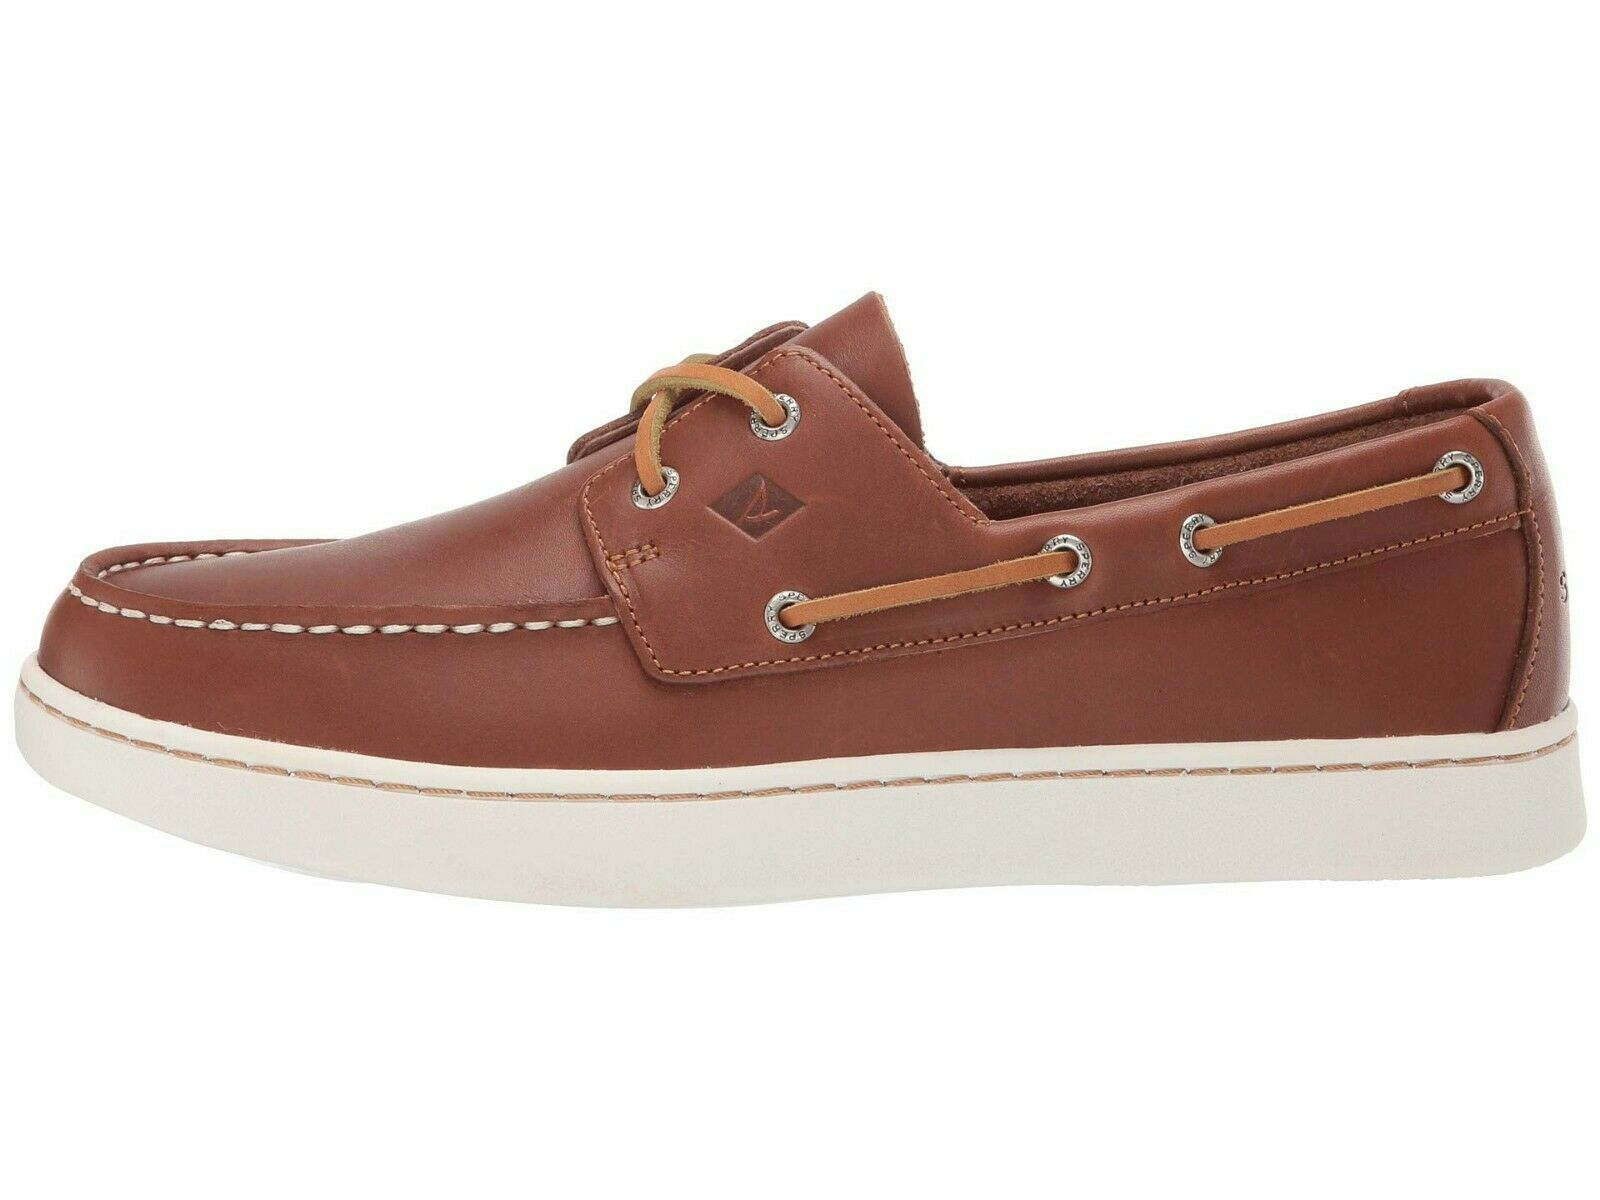 Men's Sperry Top-Sider Cup 2 Eye Leather Oxford, STS18791 Multiple Sizes Tan image 4